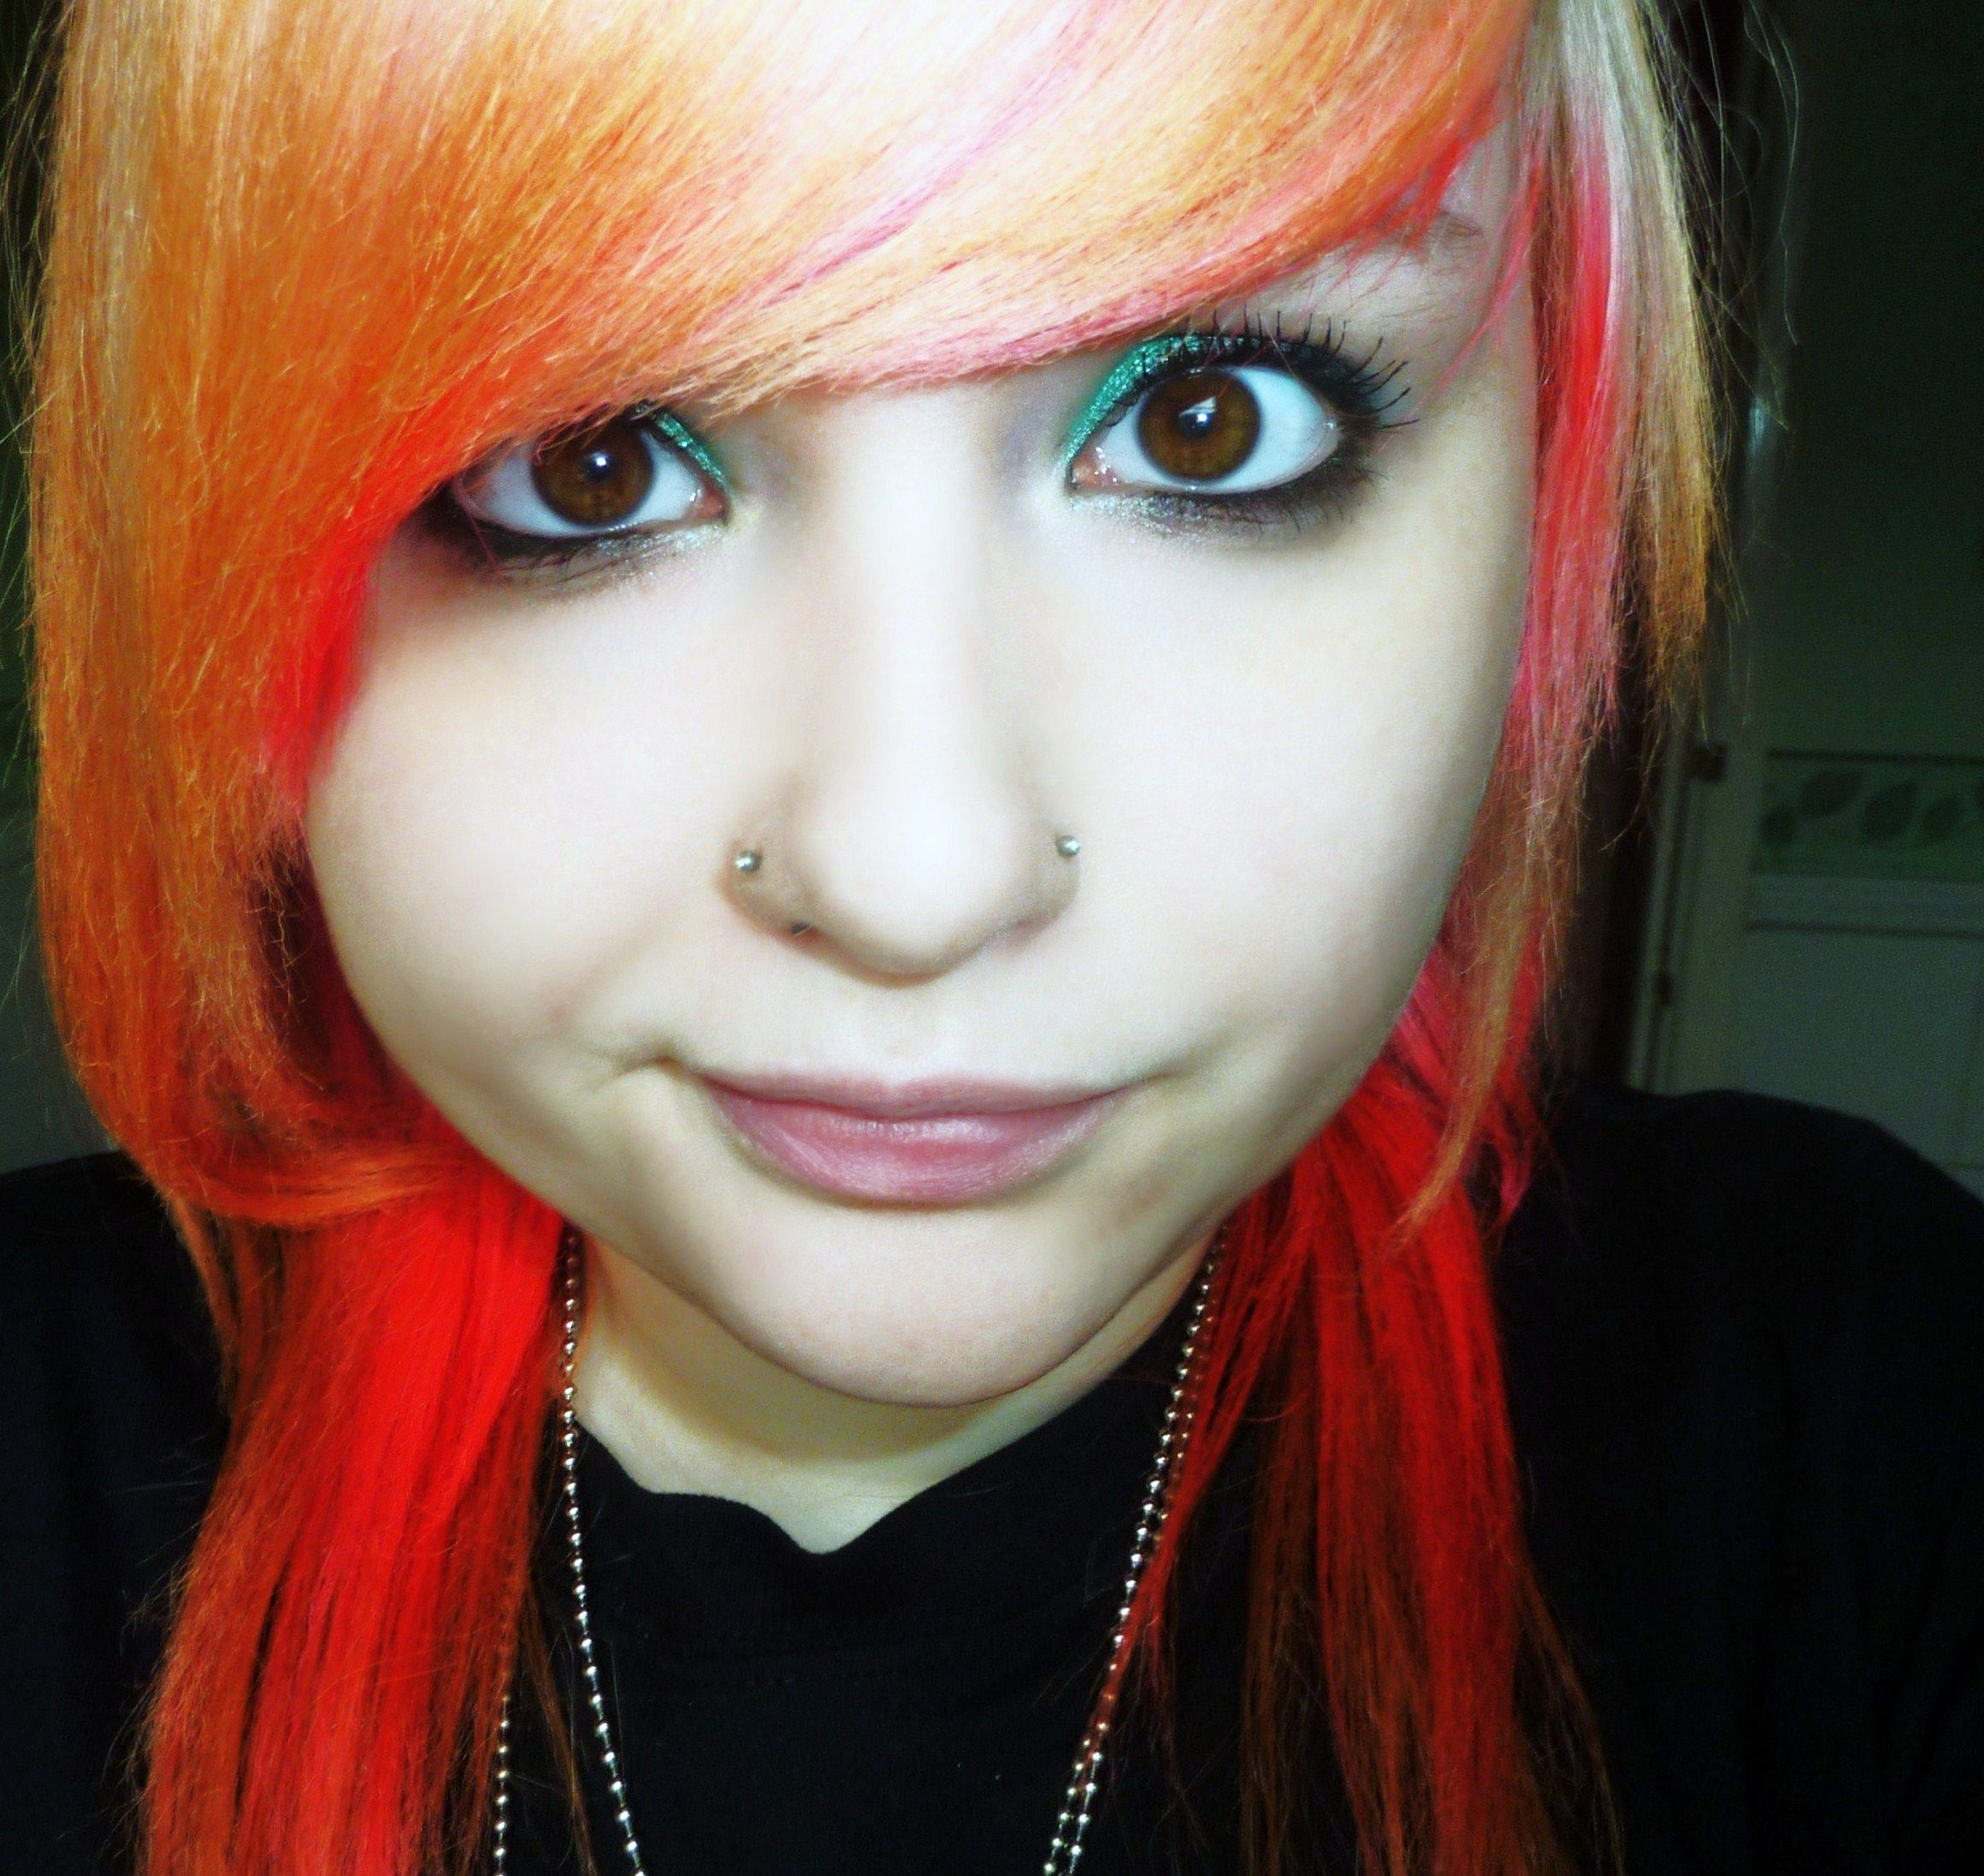 Nose piercing gone wrong  nose piercings on both sides  Hair  Pinterest  Nose piercings and